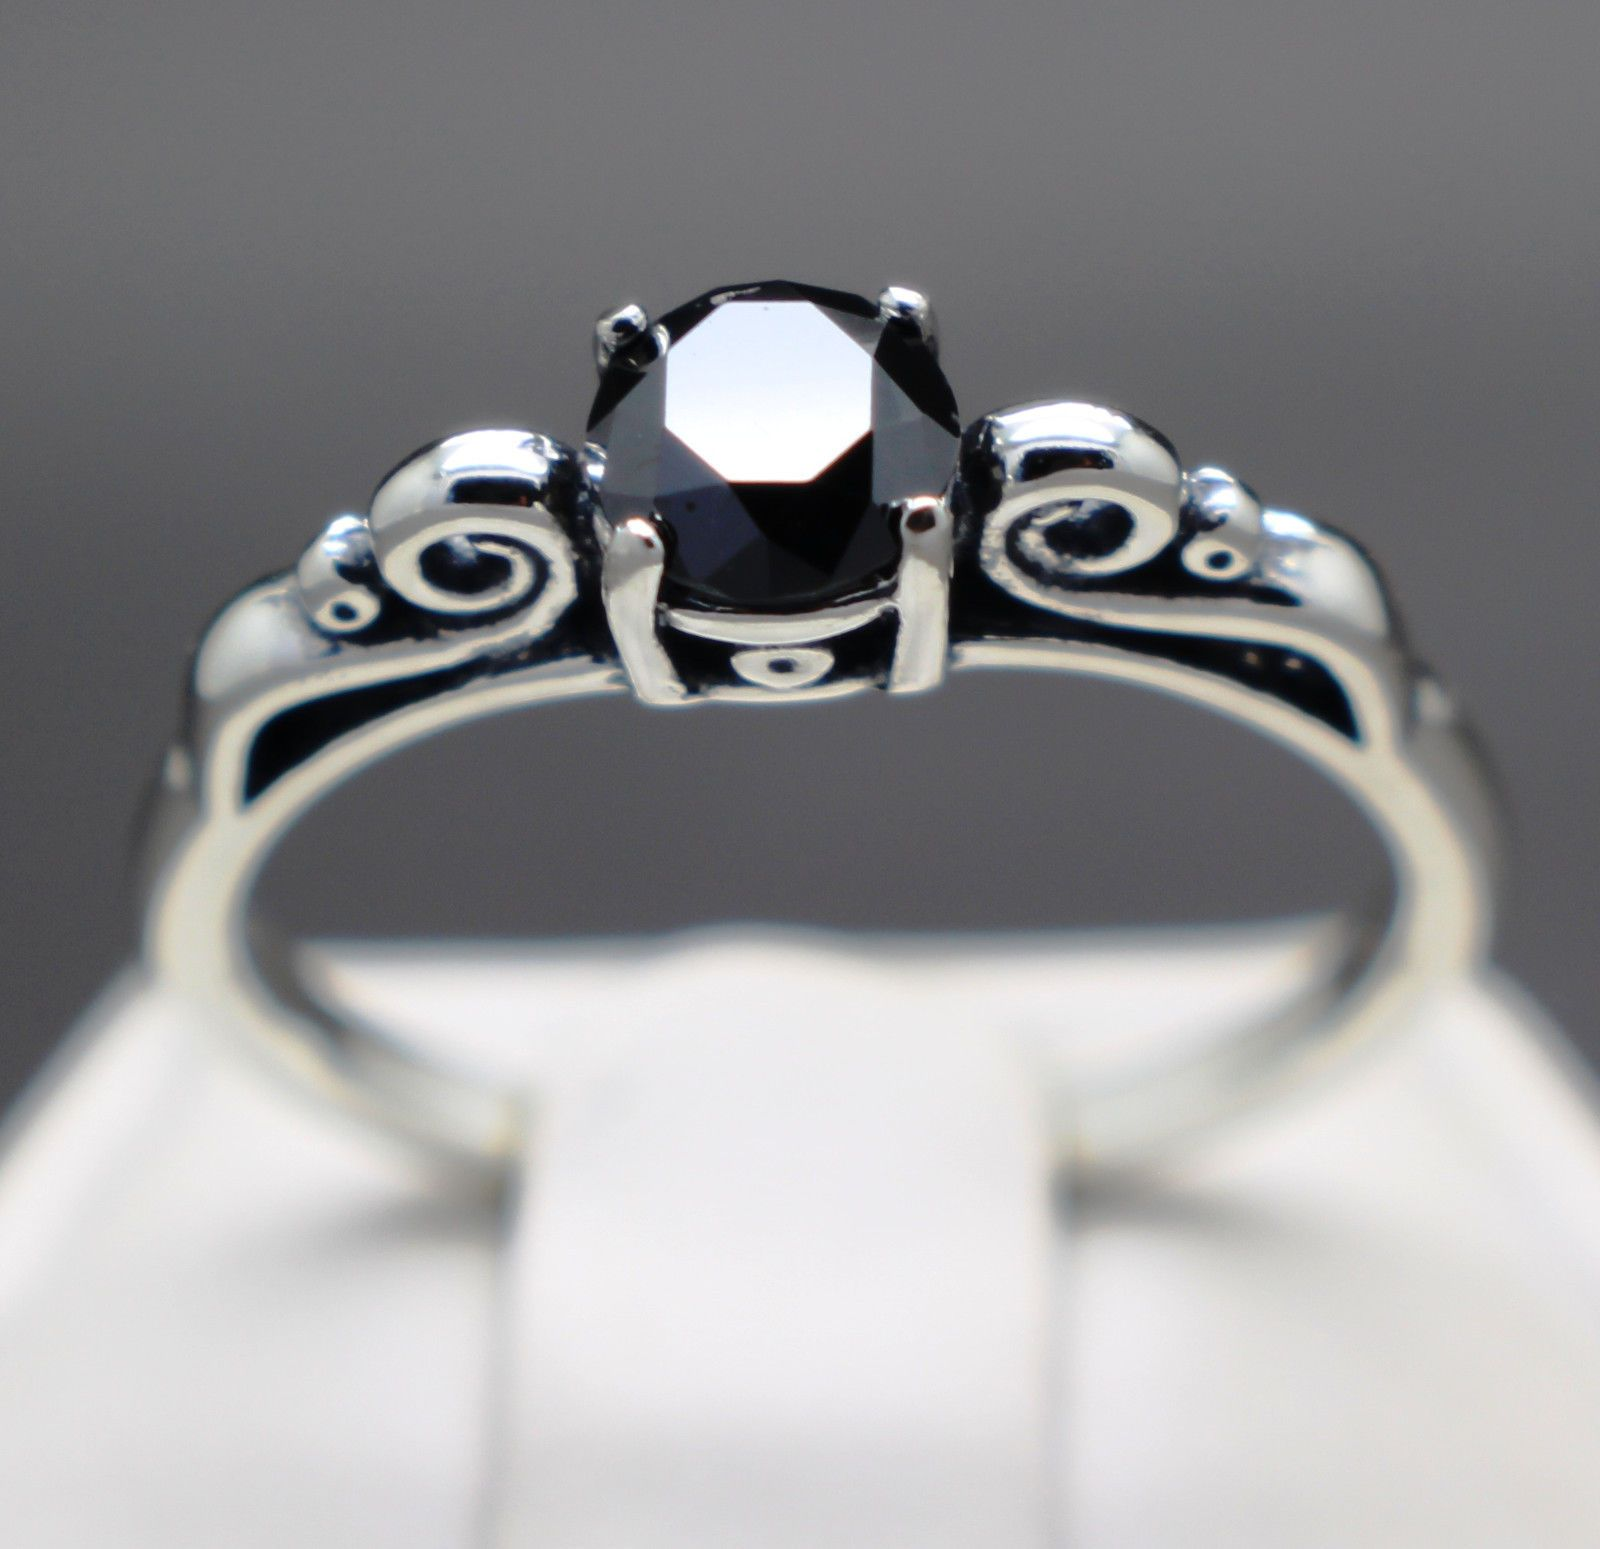 52cts 520mm Natural Black Diamond Ring, Certified Aaa Grade & $395 Value